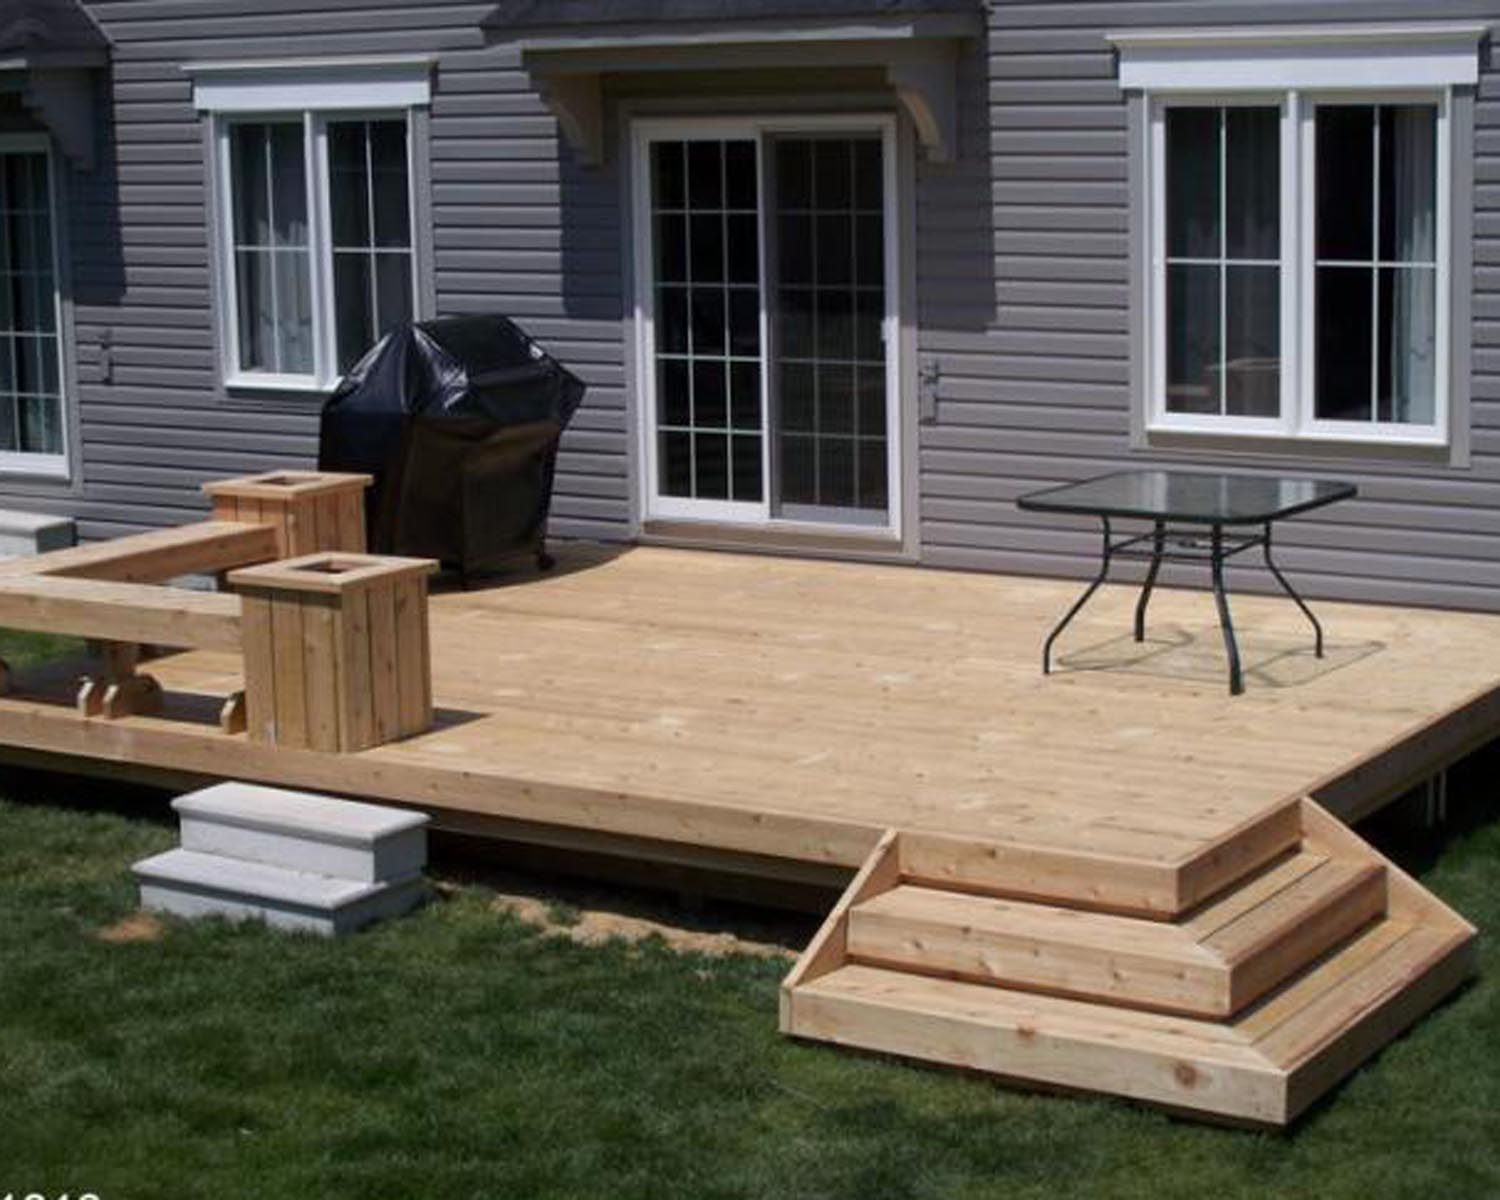 Deck Ideas Be More When Building Simple But Functional Designs Can Look Work